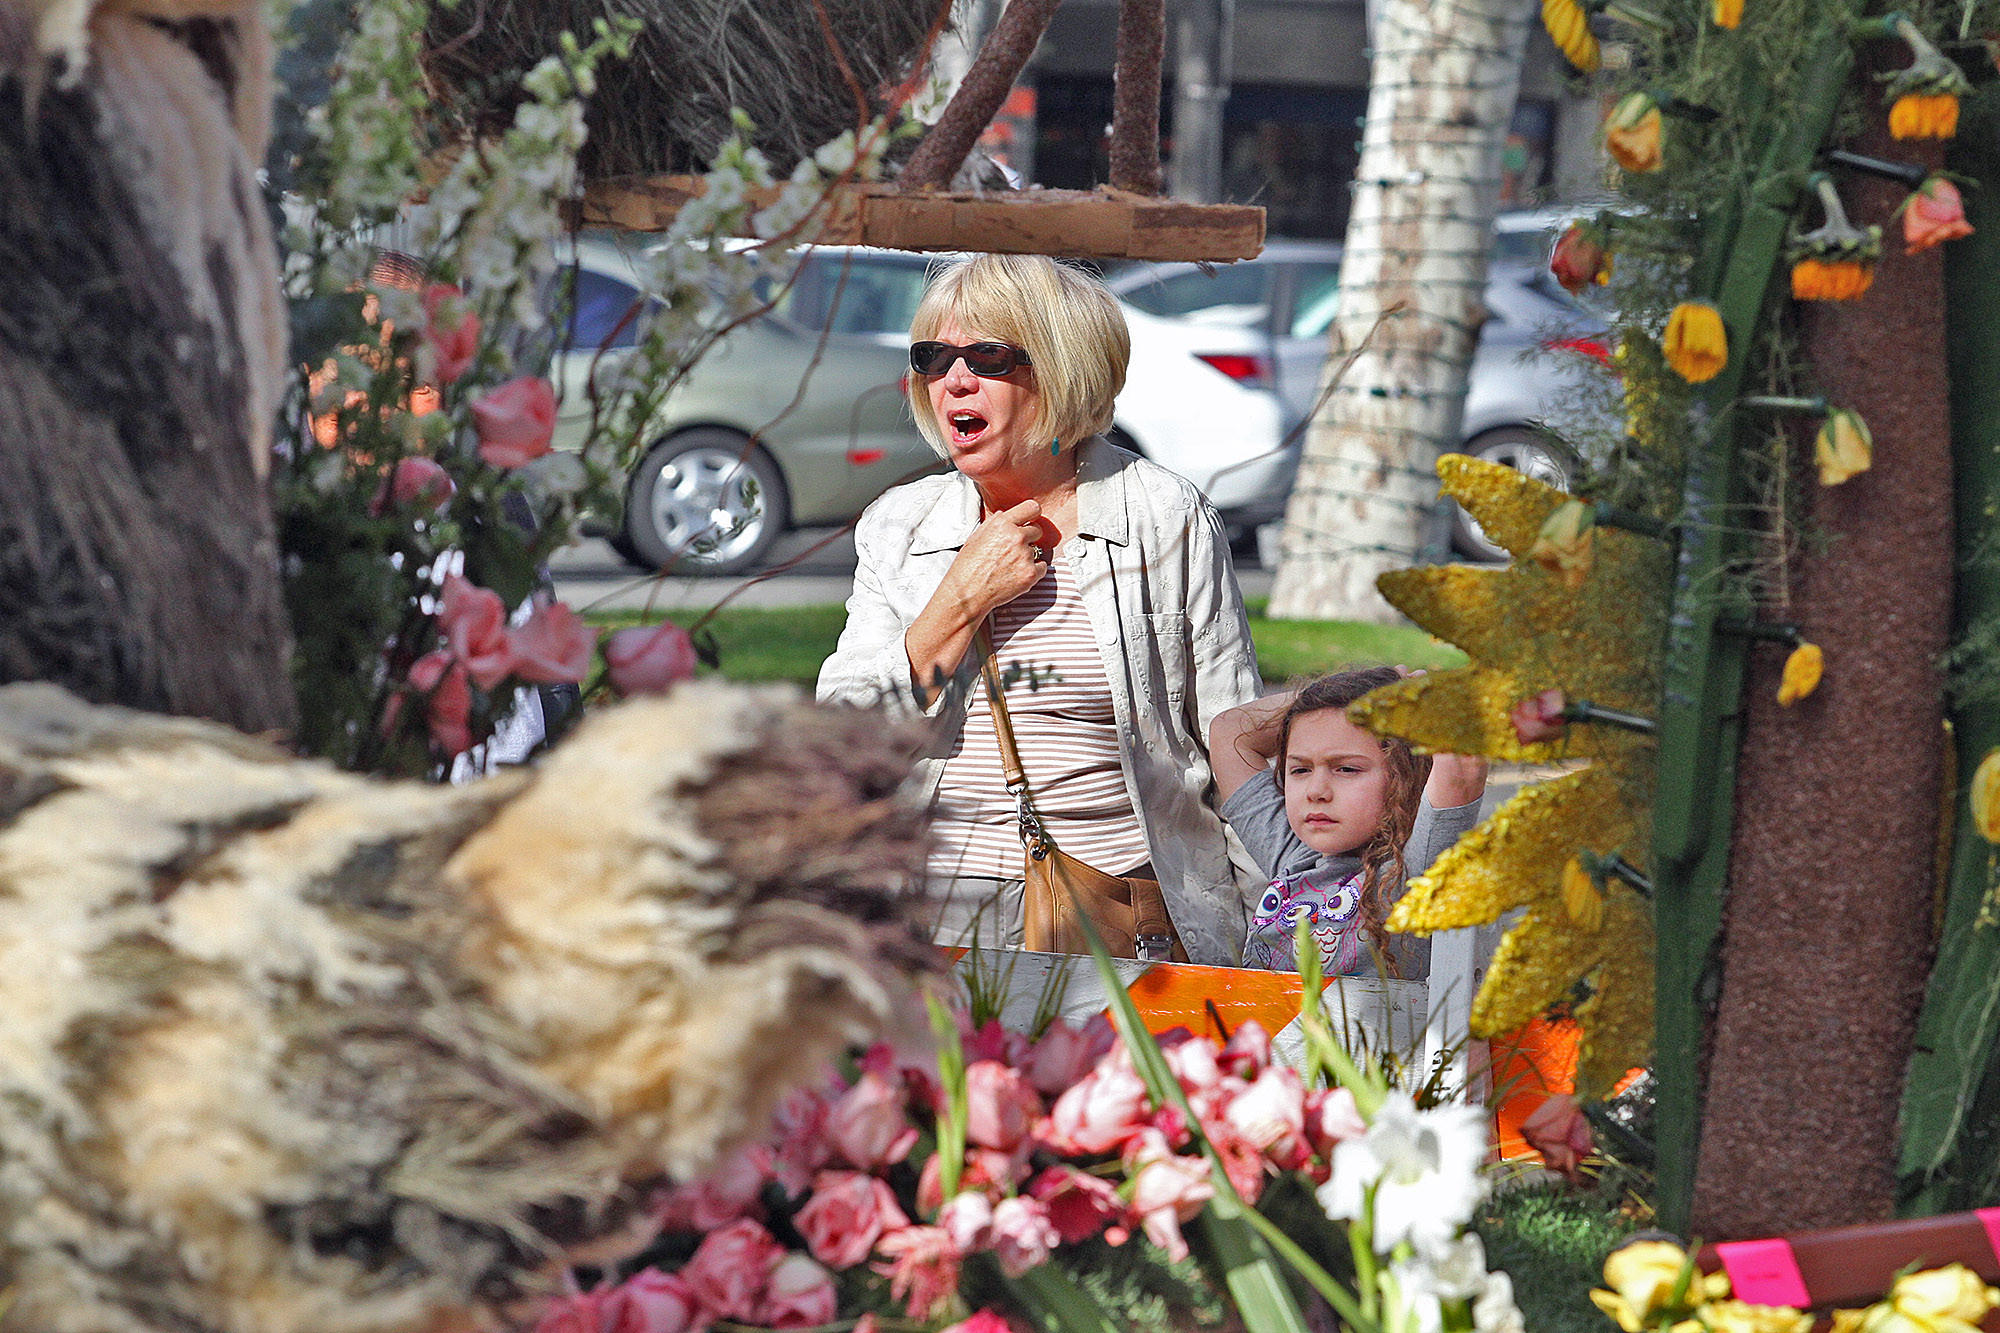 Leah Kamm of Los Feliz holds the hand of her grand daughter Mia Friedlander, 5, of Encino, as they look at the front of the Glendale Rose Parade float, set for viewing on Brand Blvd. in front of the Alex Theatre, on Friday, January 3, 2014.